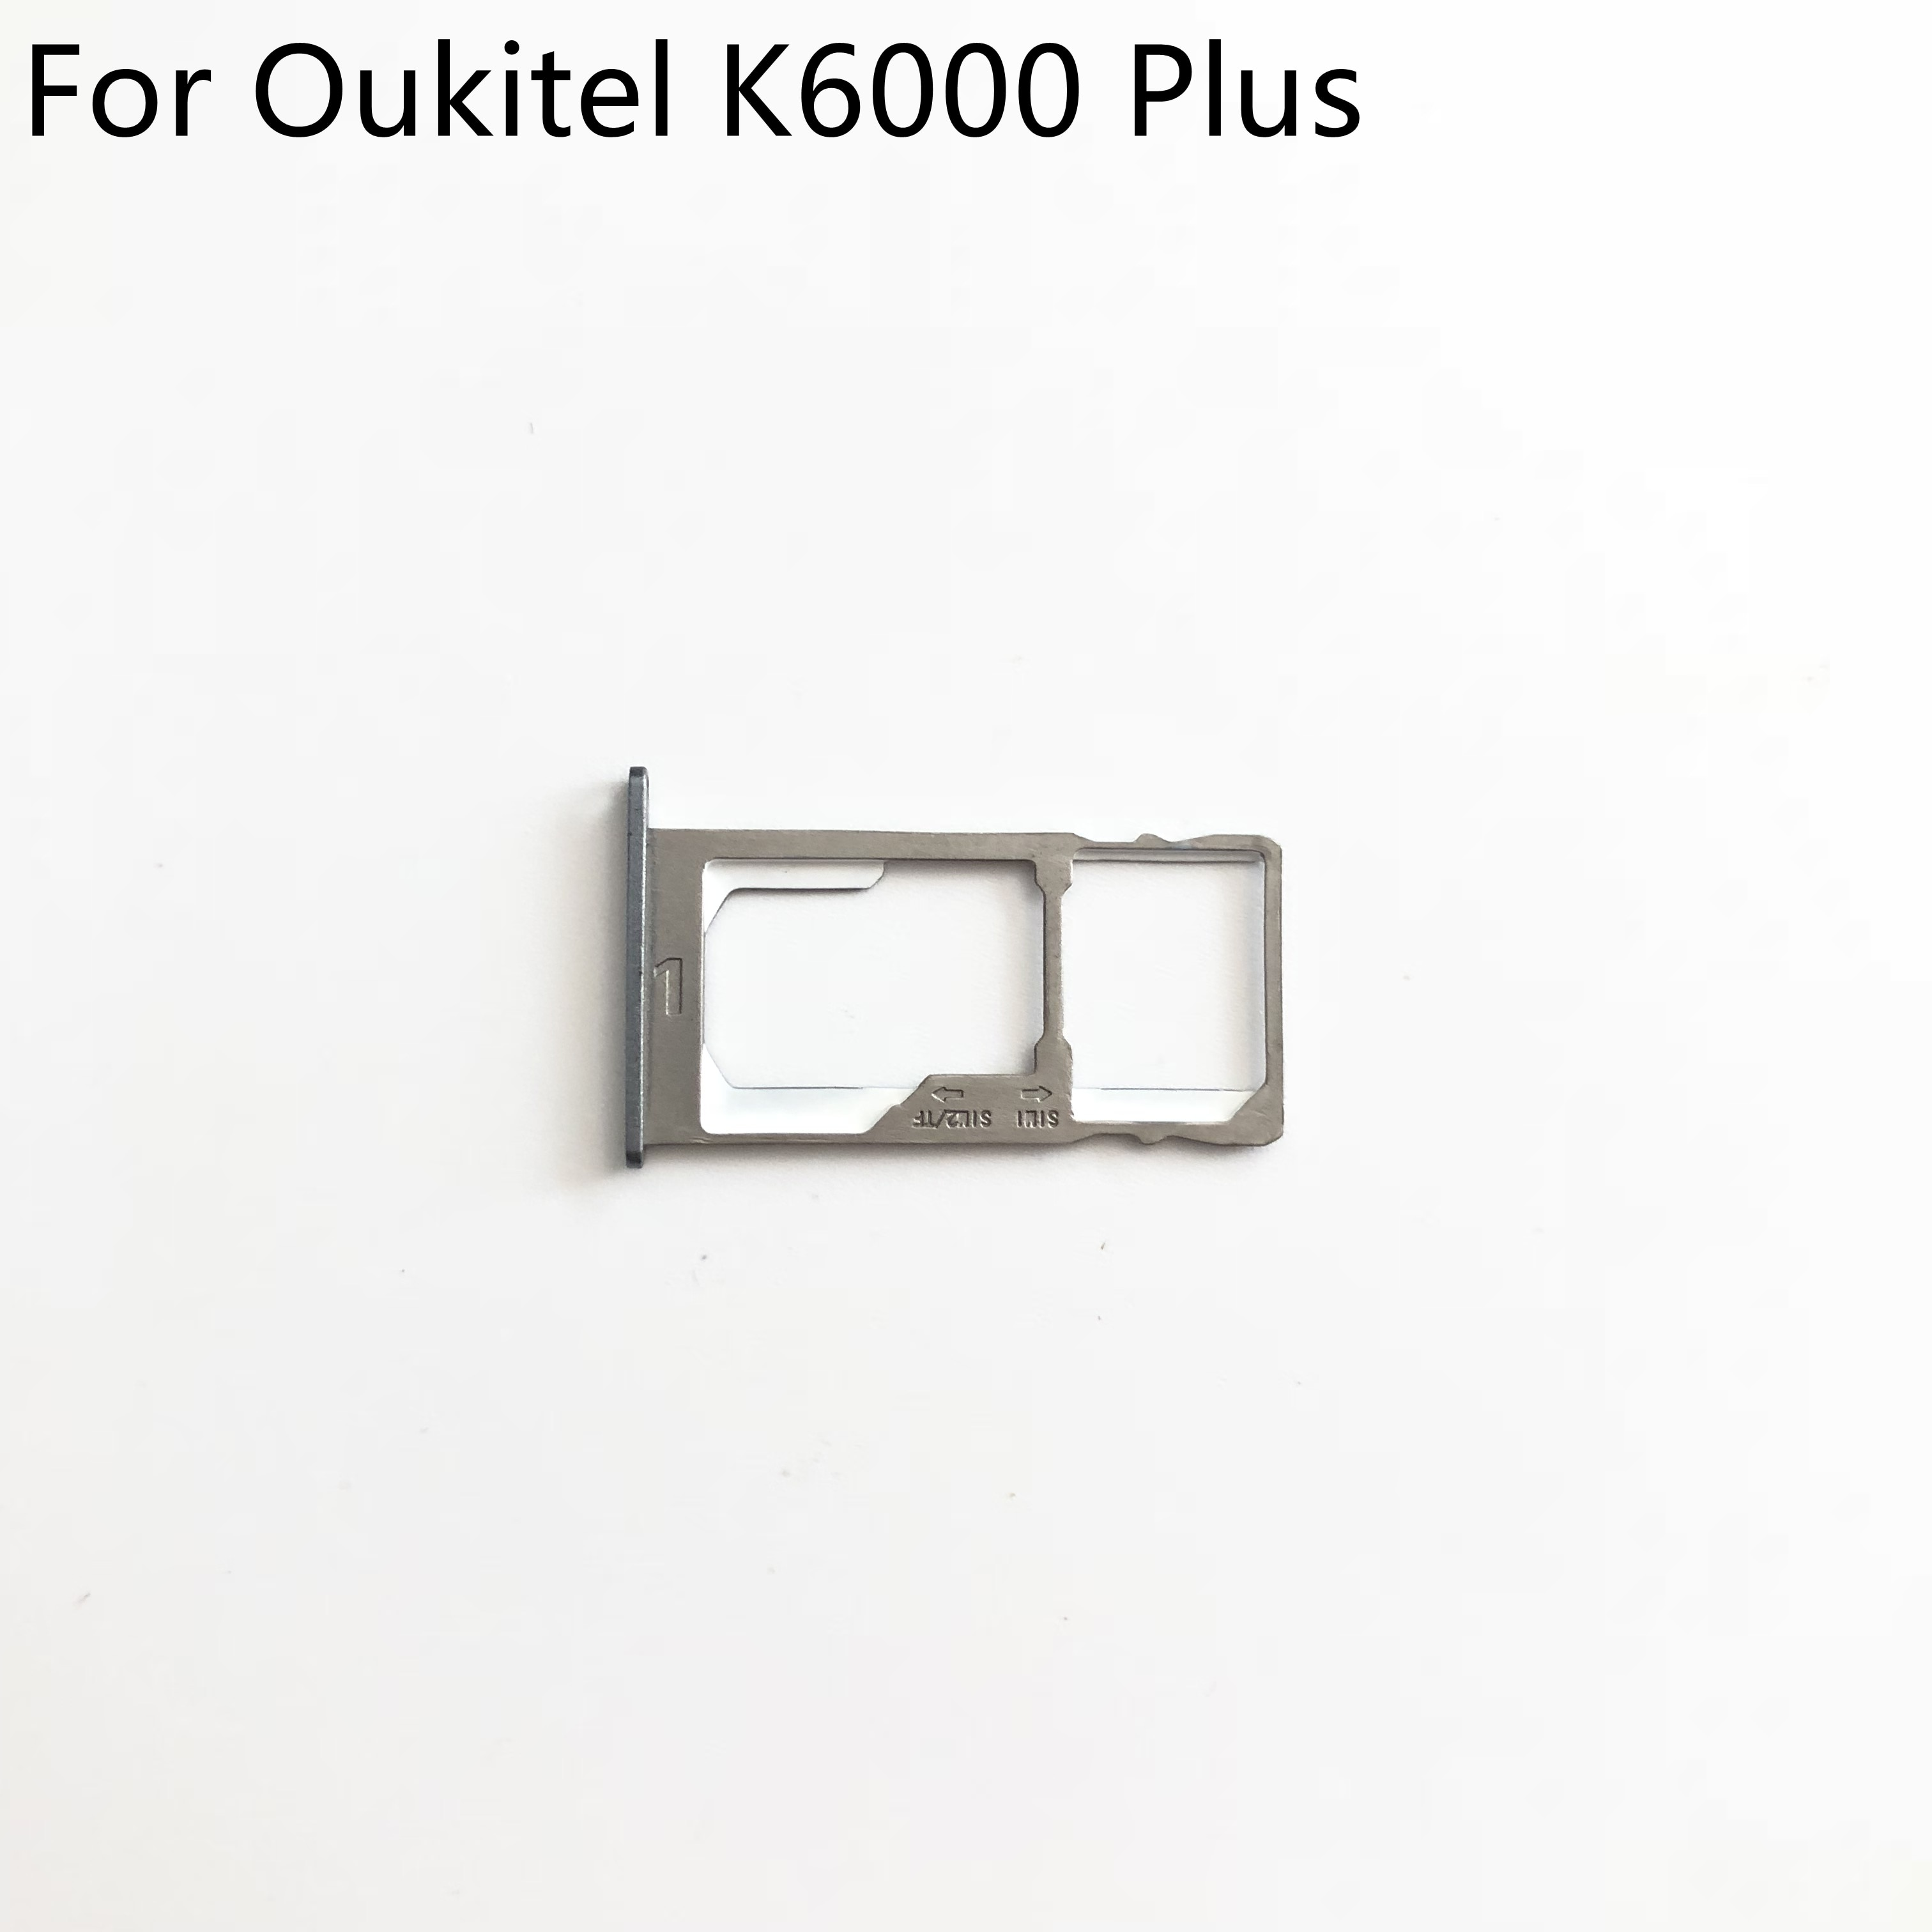 Фото - New Sim Card Holder Tray Card Slot Replacement For Oukitel K6000 Plus MTK6750T Octa Core 5.5 FHD 1920x1080 new sim card holder tray card slot replacement for oukitel k6000 plus mtk6750t octa core 5 5 fhd 1920x1080